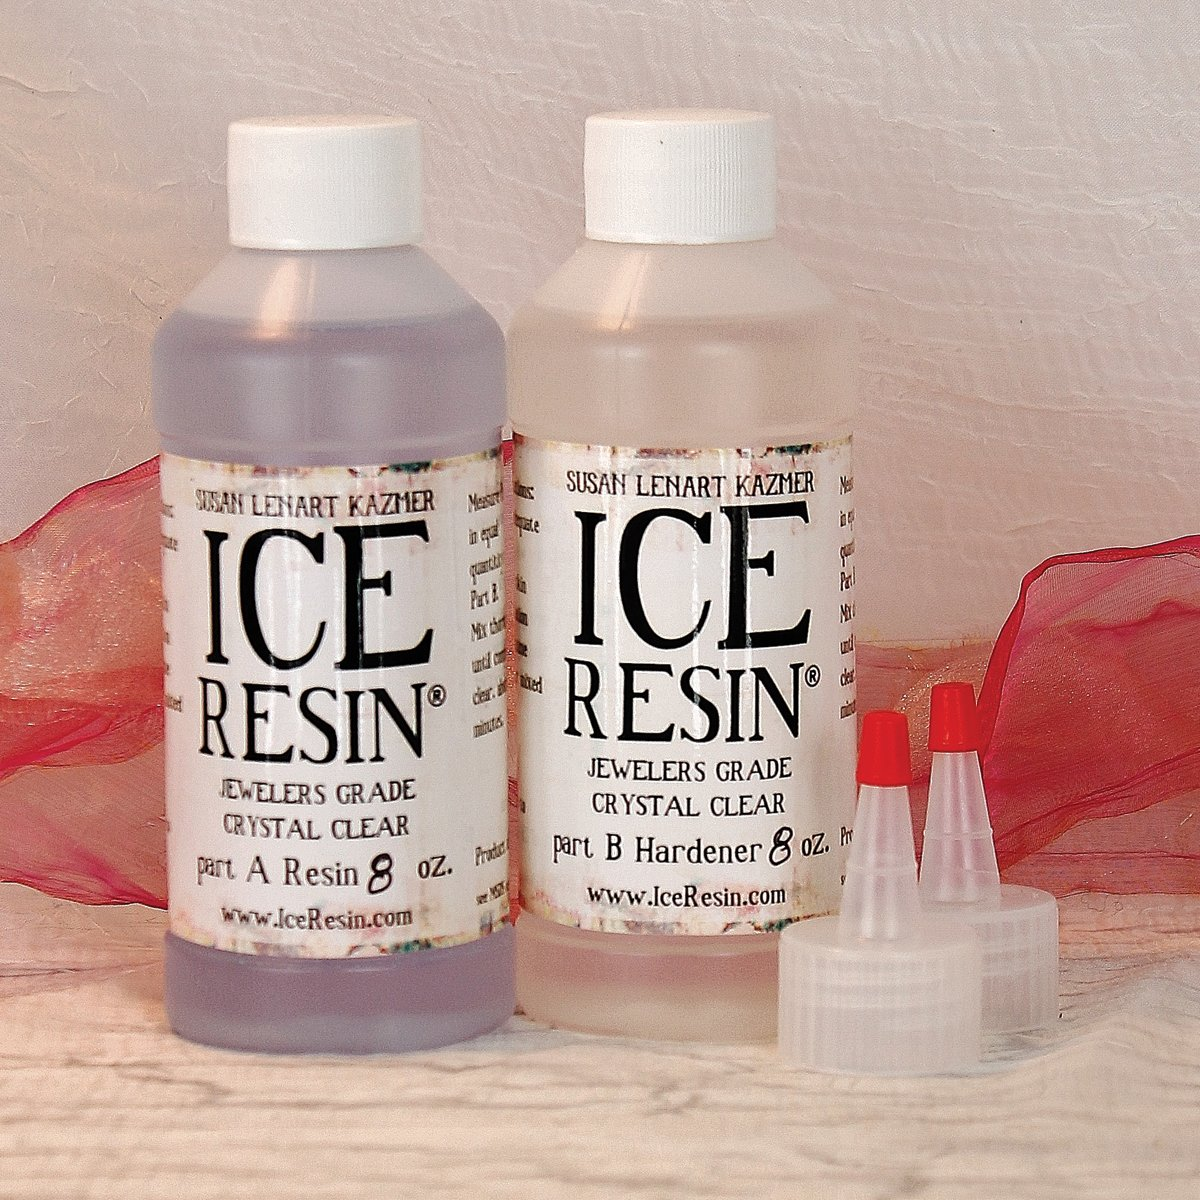 Hardener 8 oz pack of 6 automotive parts and accessories - Amazon Com Ice Resin 16oz Refill Kit 8oz Resin 8oz Hardener Arts Crafts Sewing